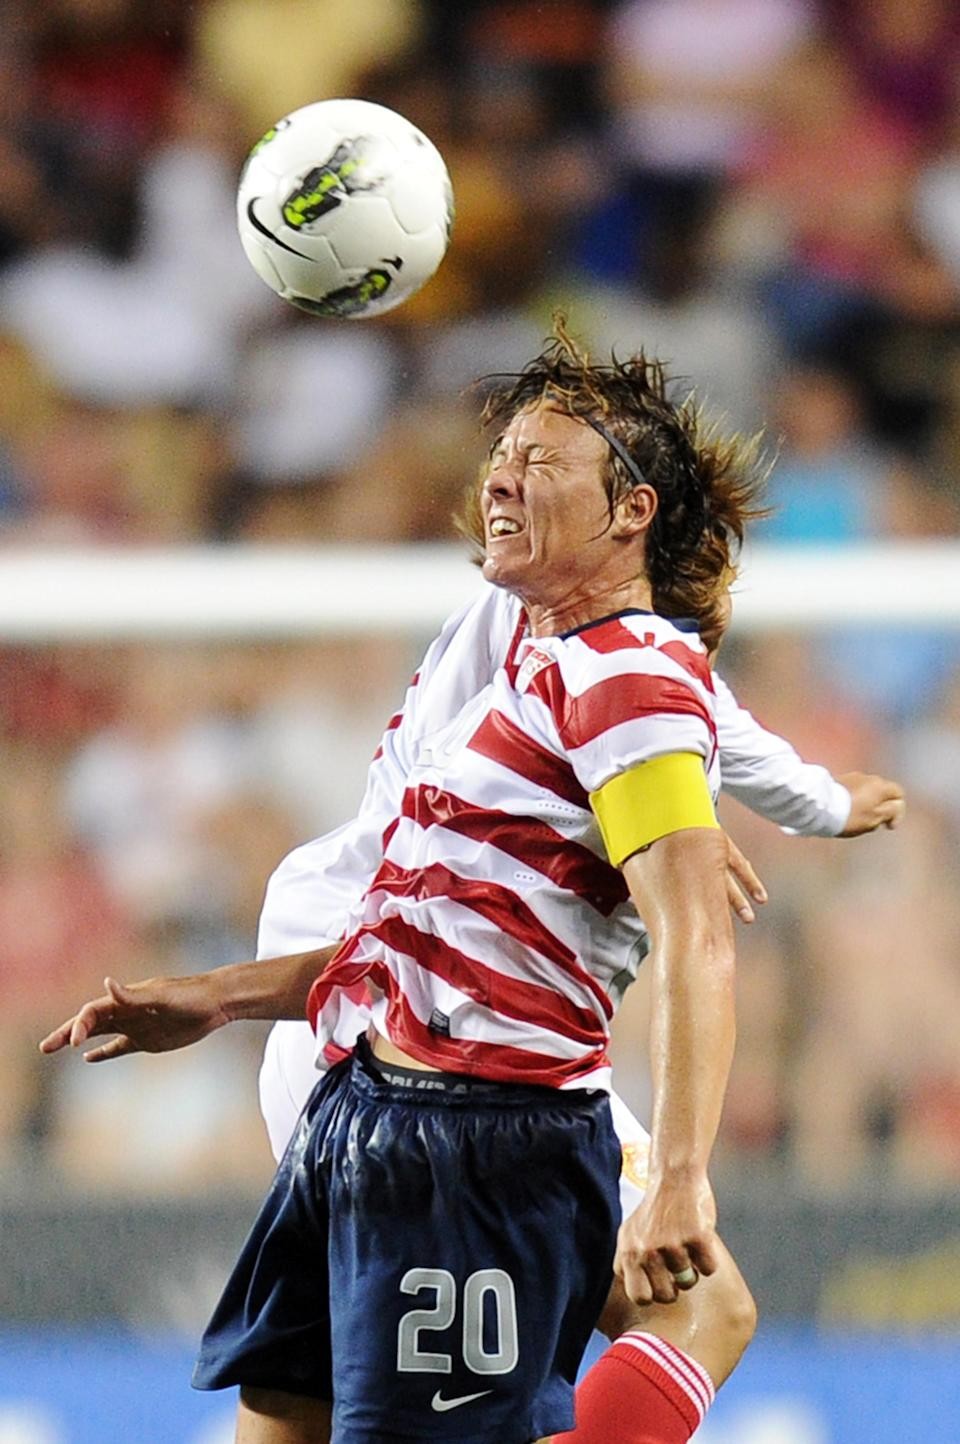 Abby Wambach heads the ball during the game against China at PPL Park on May 27, 2012, in Chester, Penn. The U.S. won 4-1. (Photo by Drew Hallowell/Getty Images)